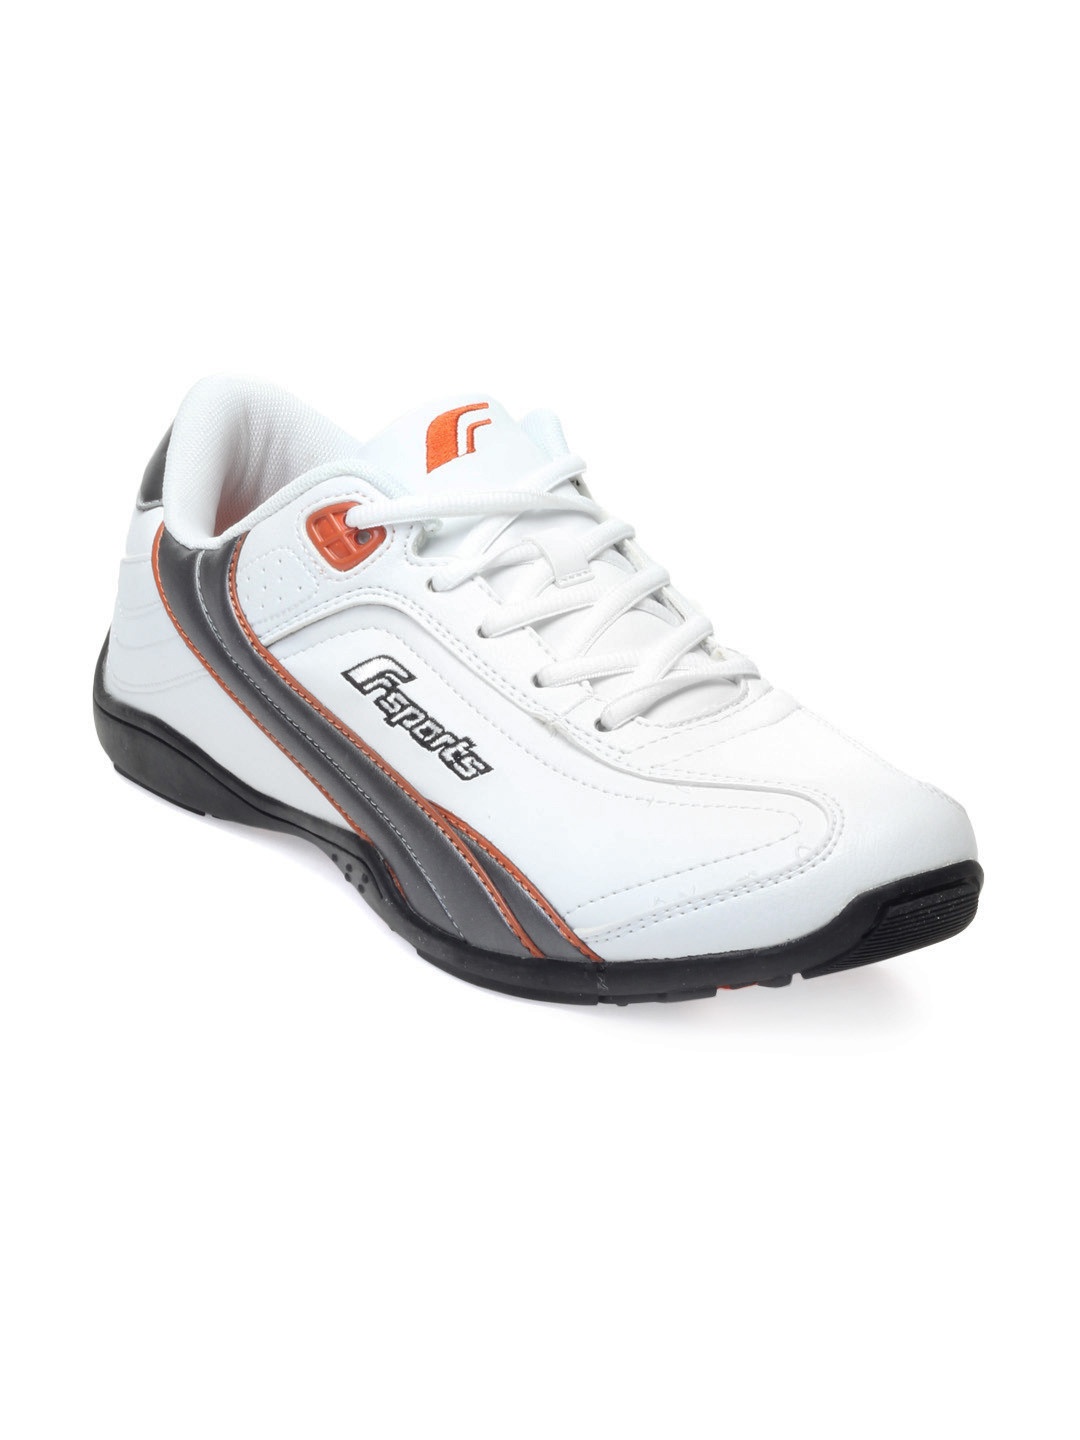 F Sports Men White Colt Shoes